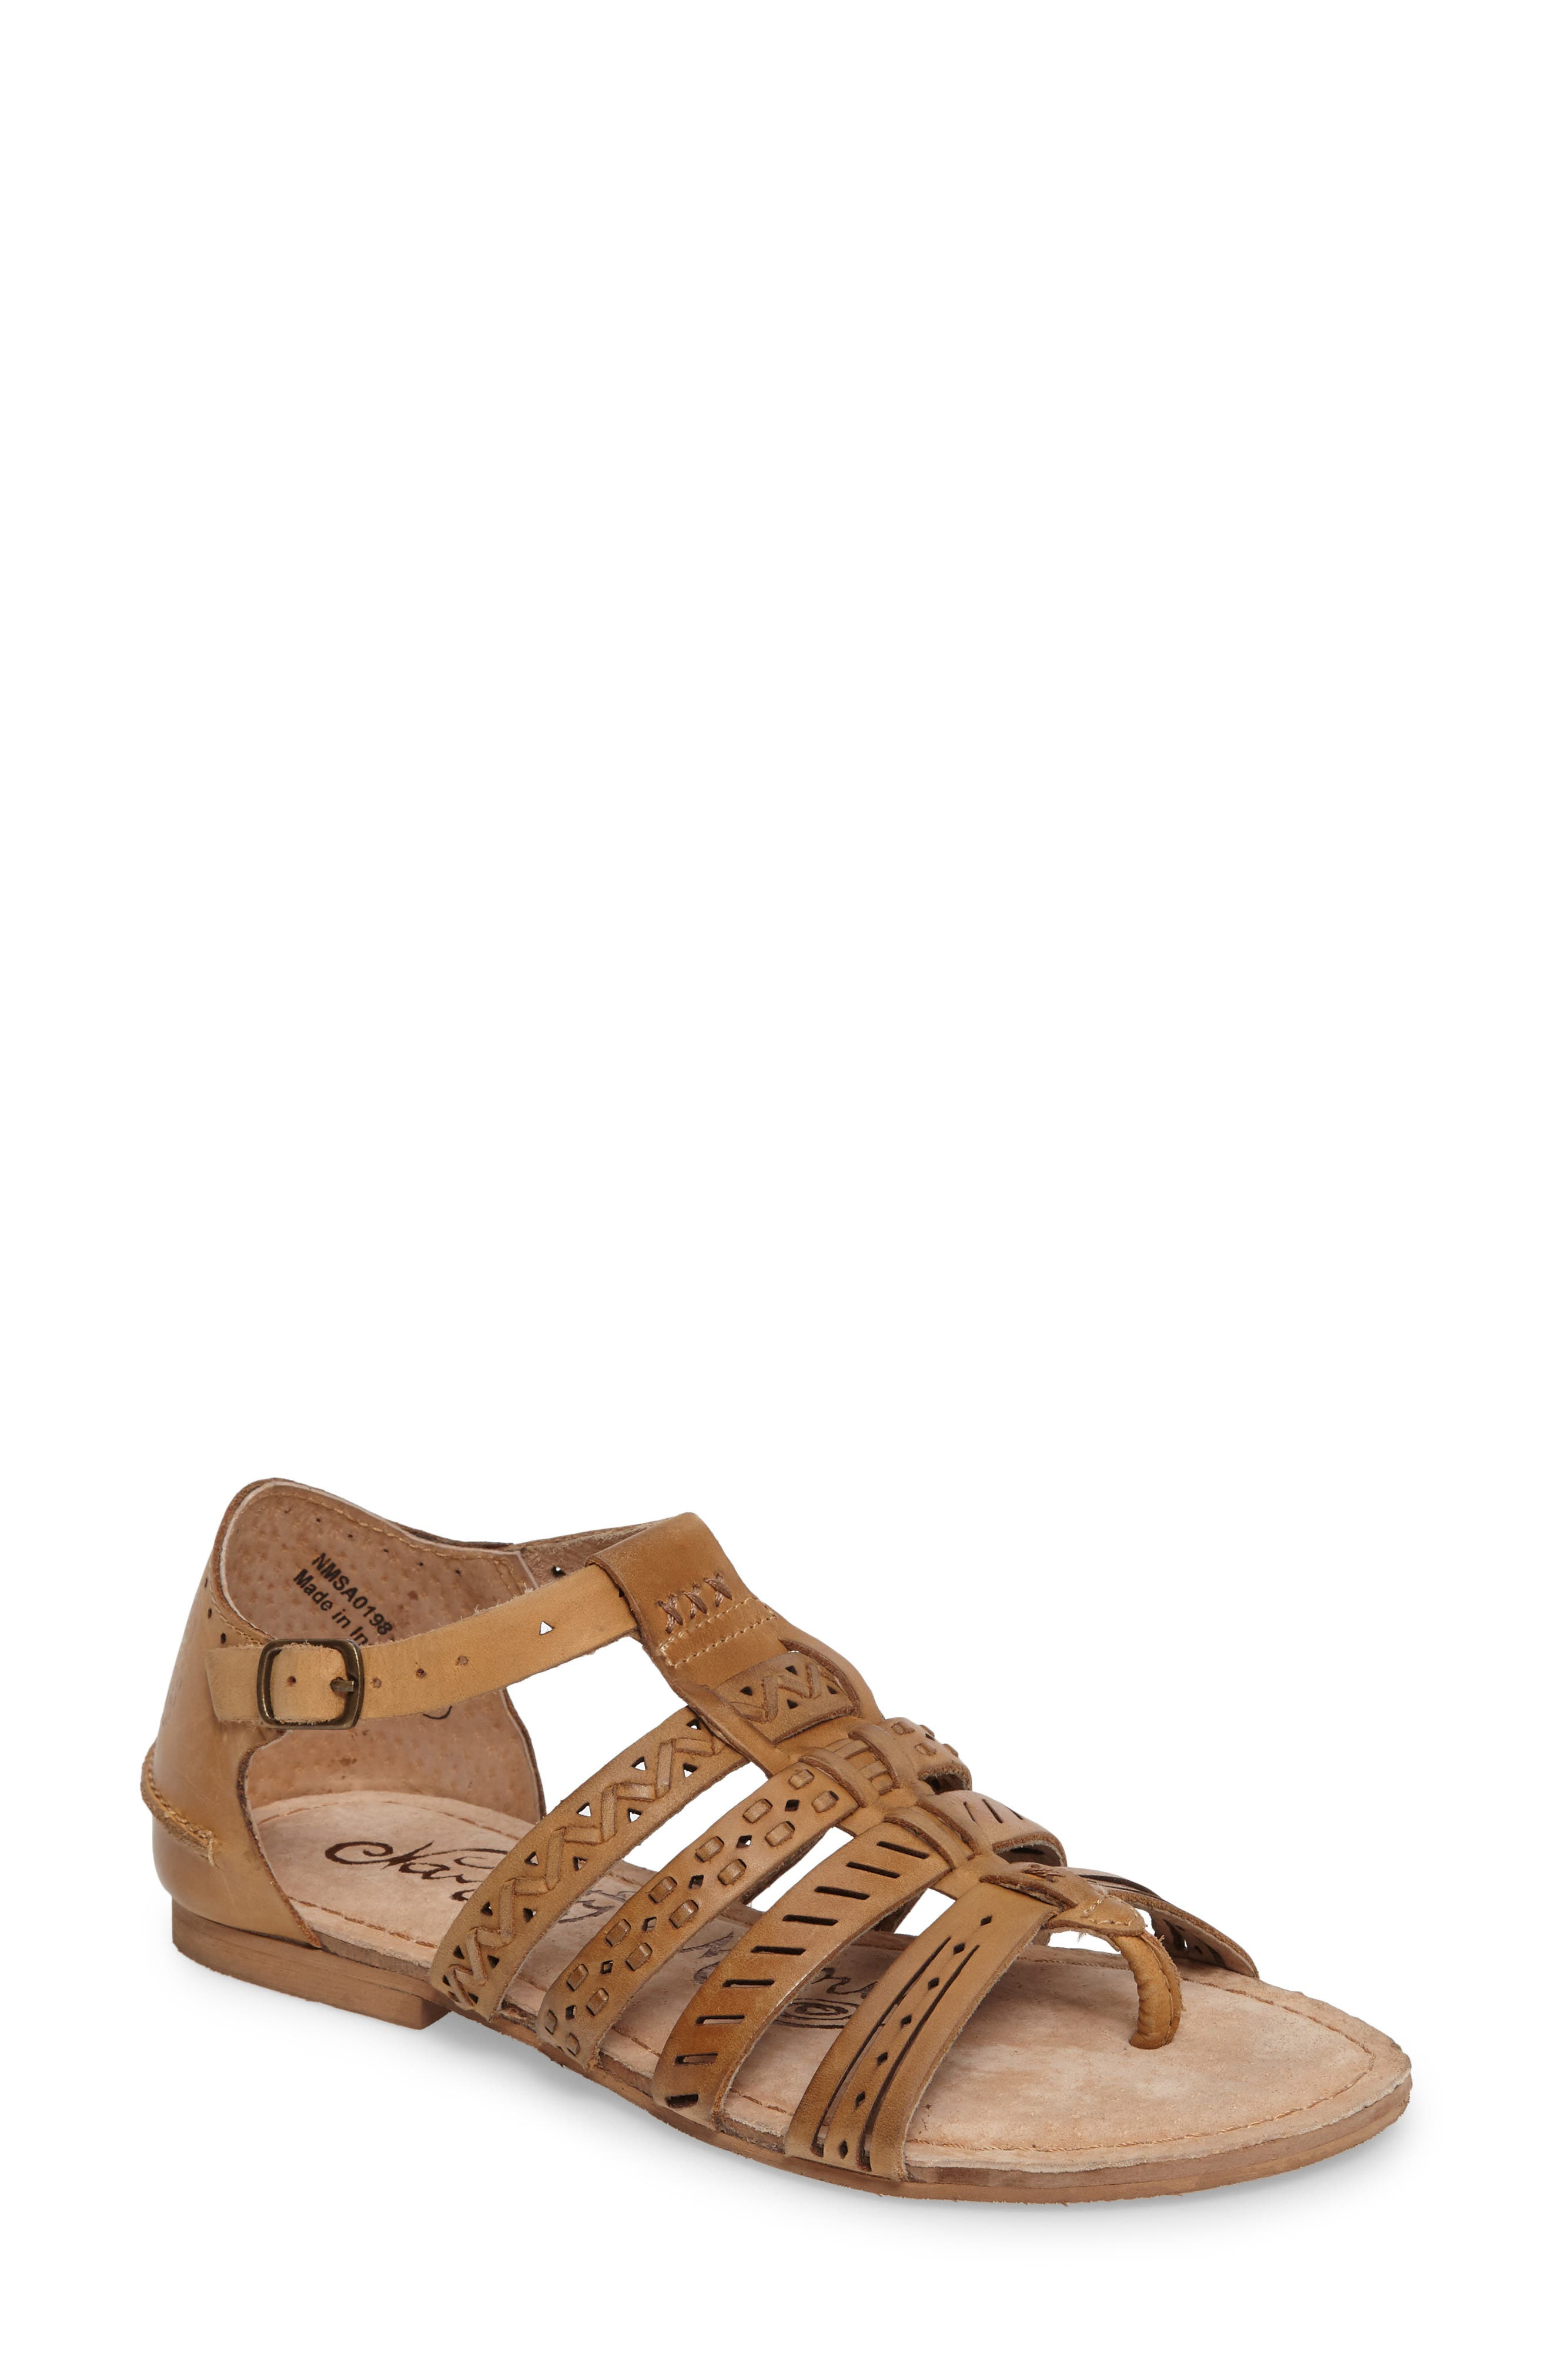 Naughty Monkey True Grit Perforated Sandal (Women)